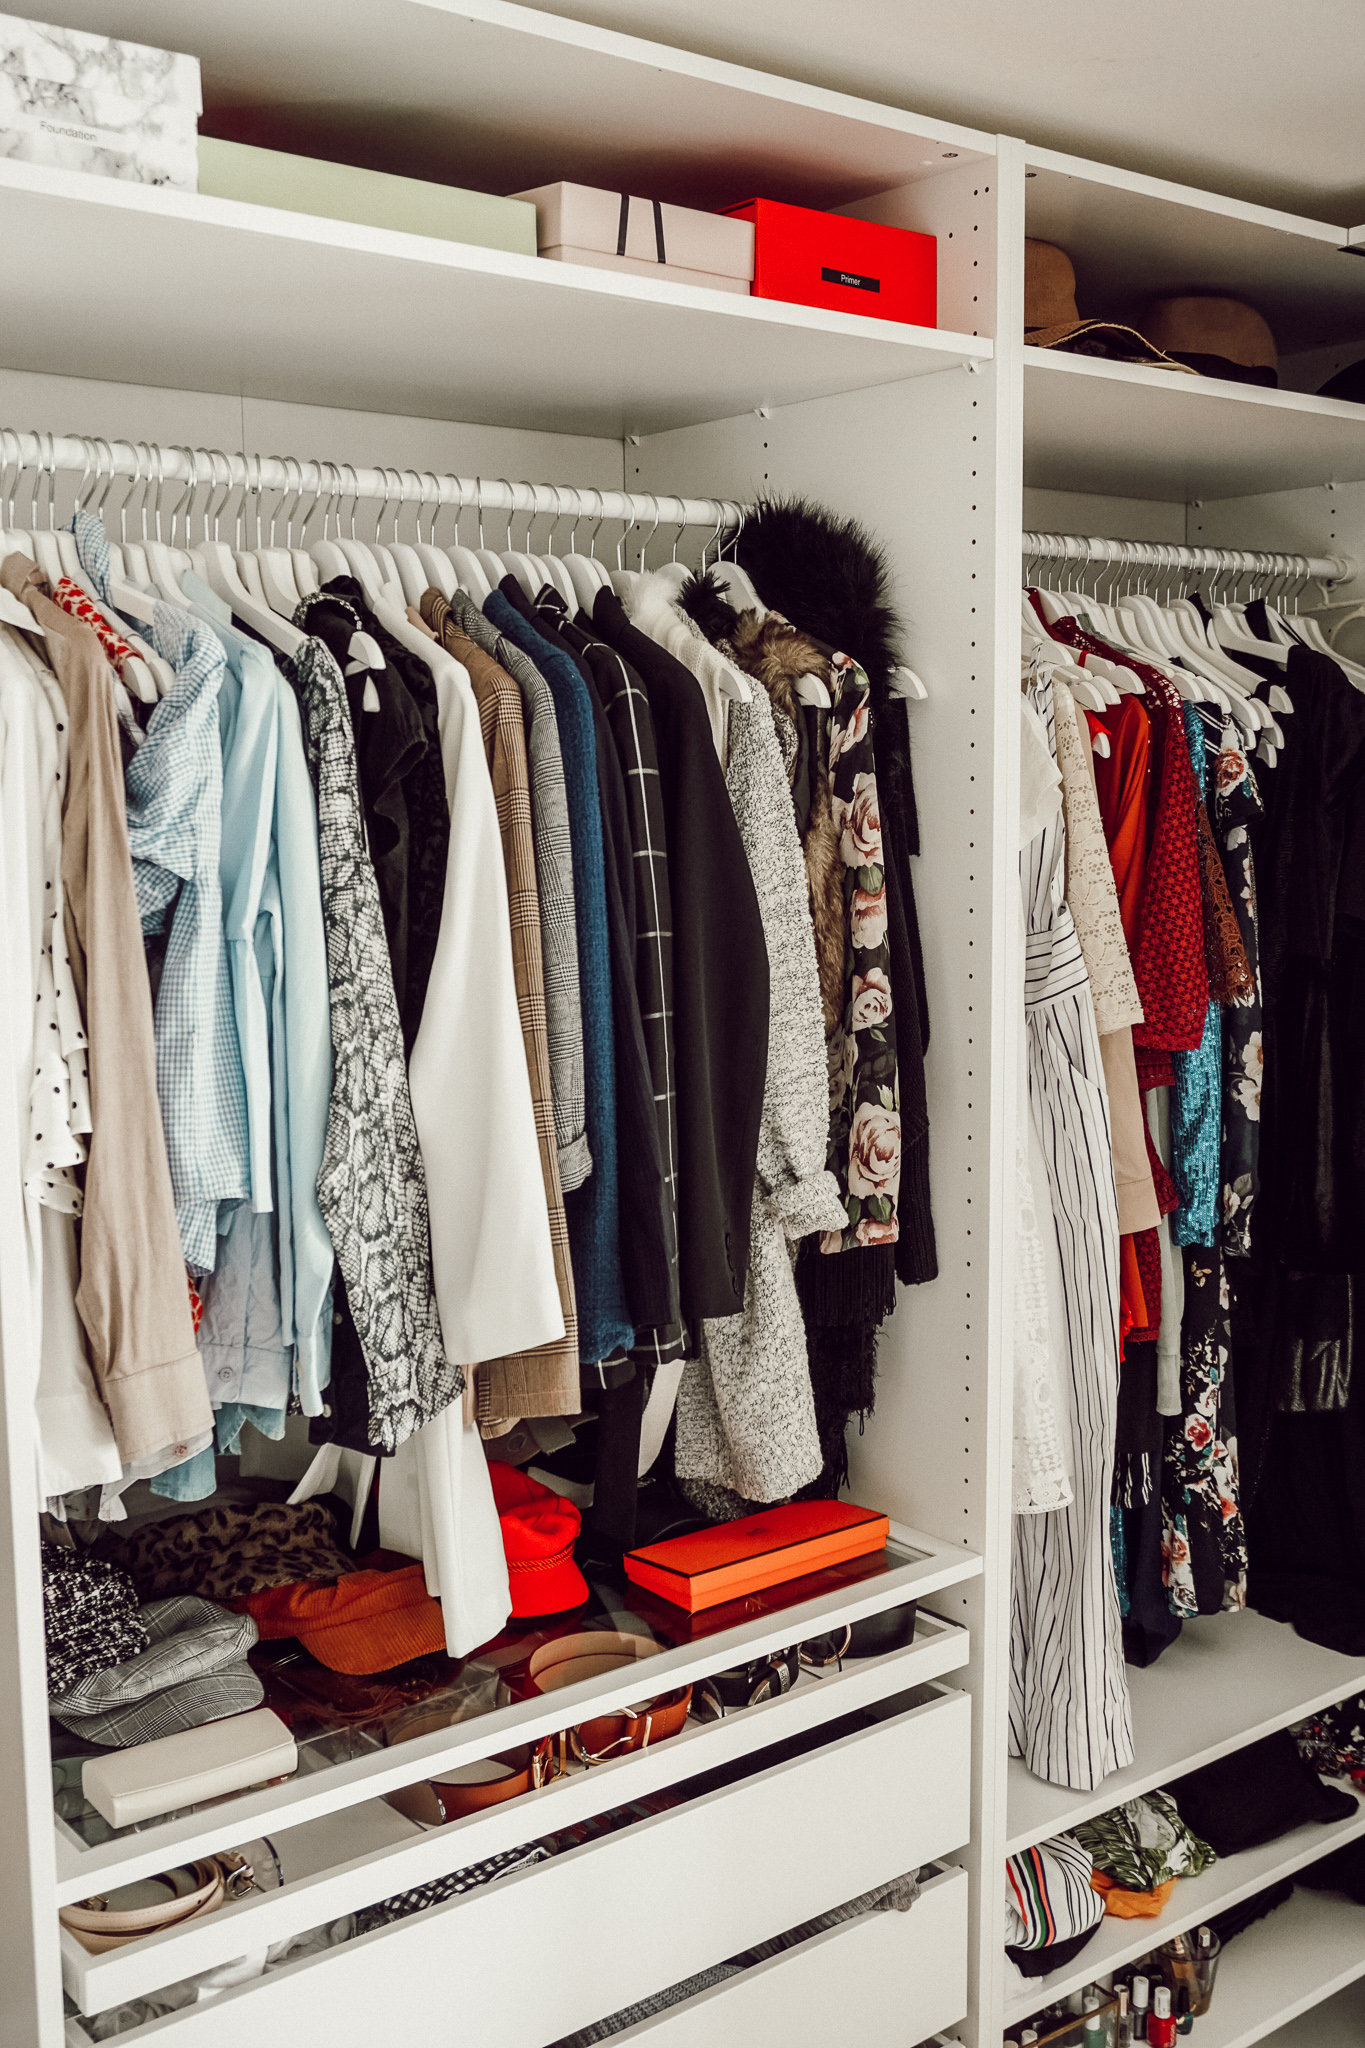 My Open Closet Project With Pax And Billy From Ikea The Chic